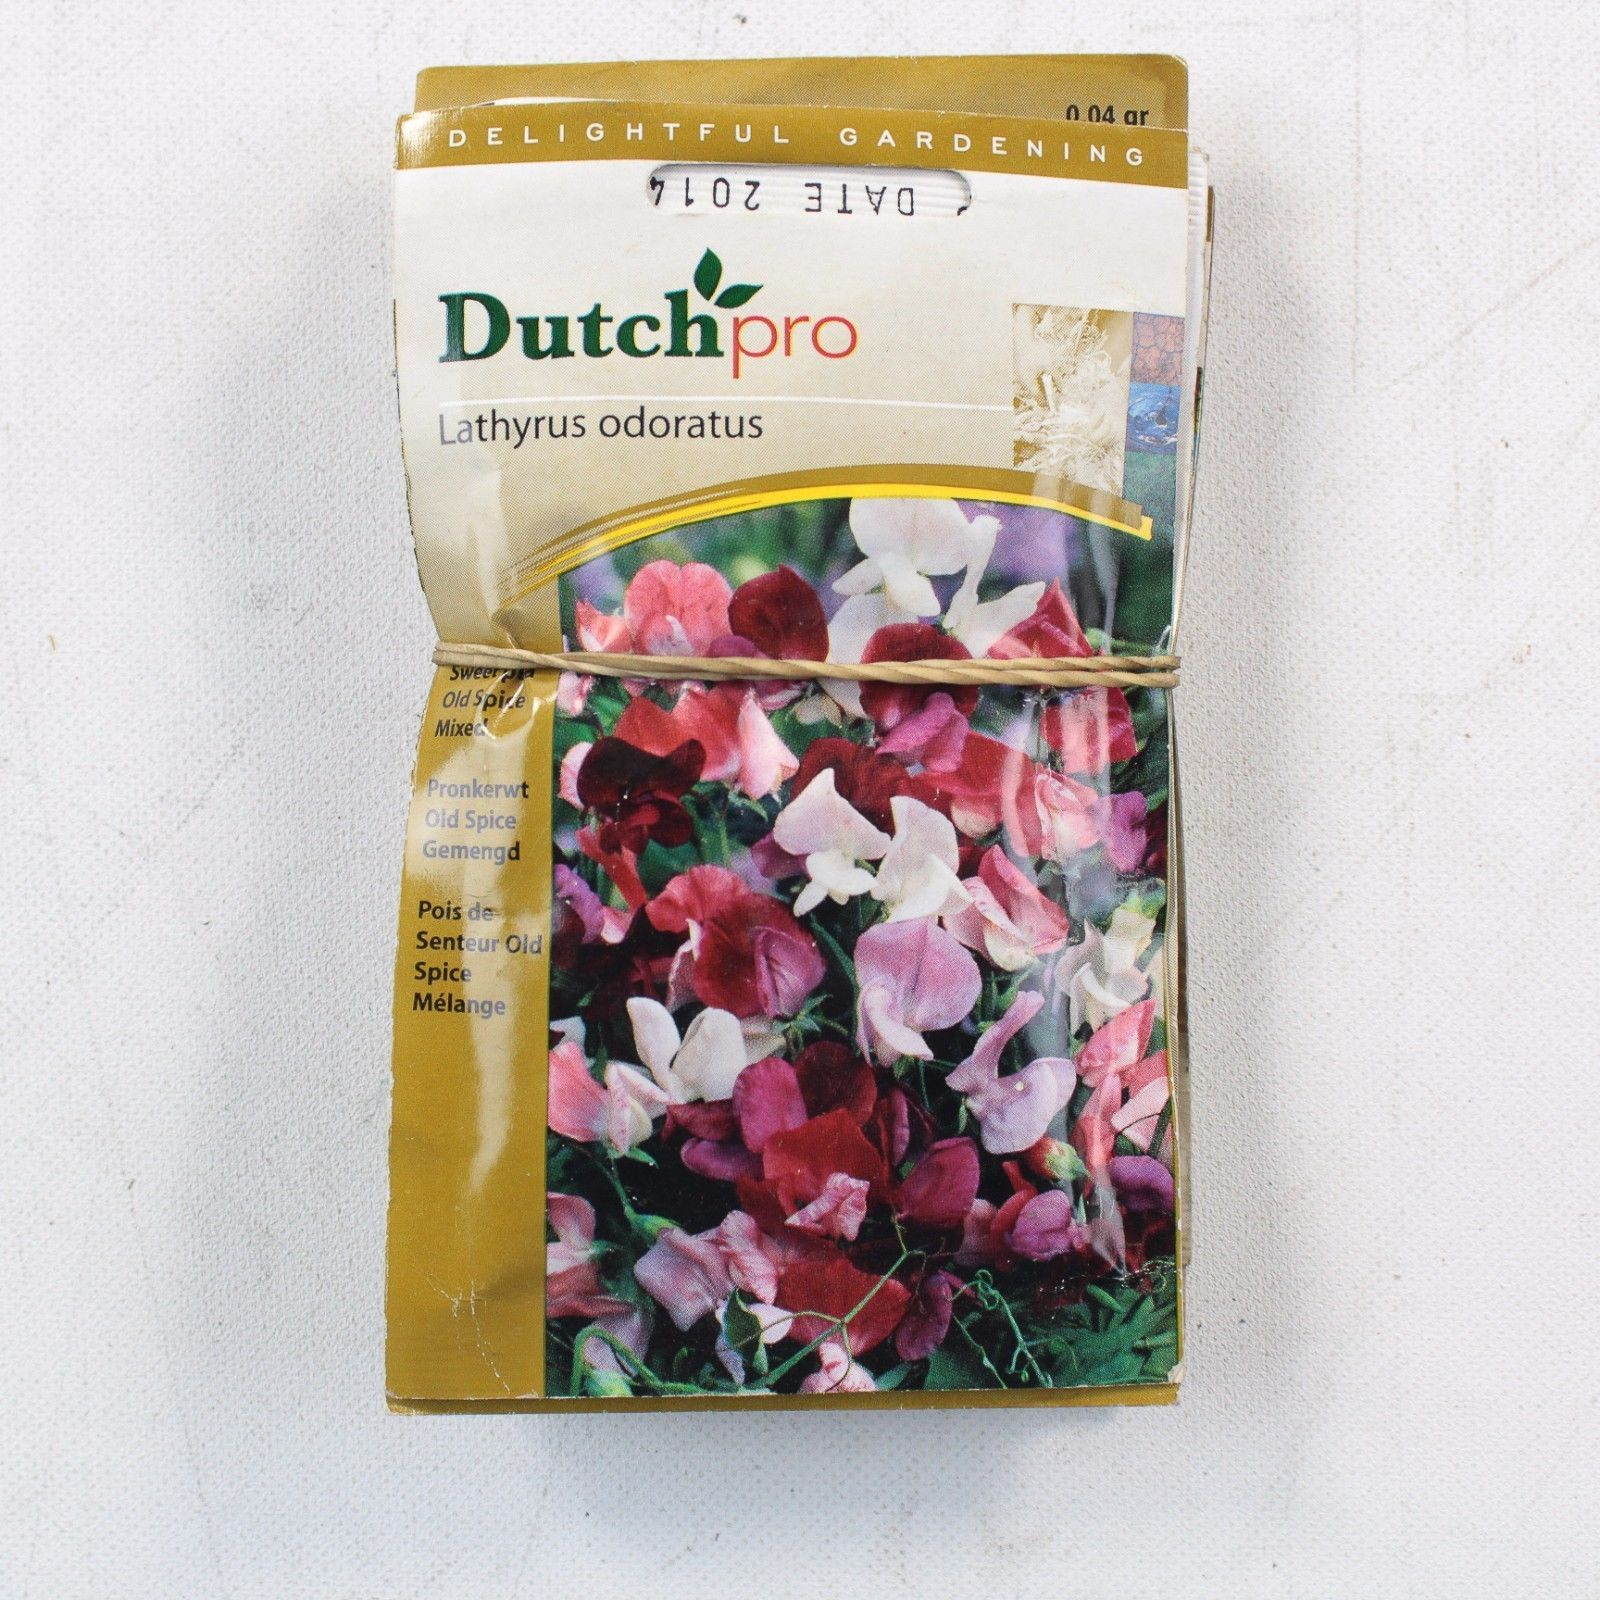 A quantity of gardening seeds - https://lostparcels.com/parcel-company-3/uncategorized/a-quantity-of-gardening-seeds/